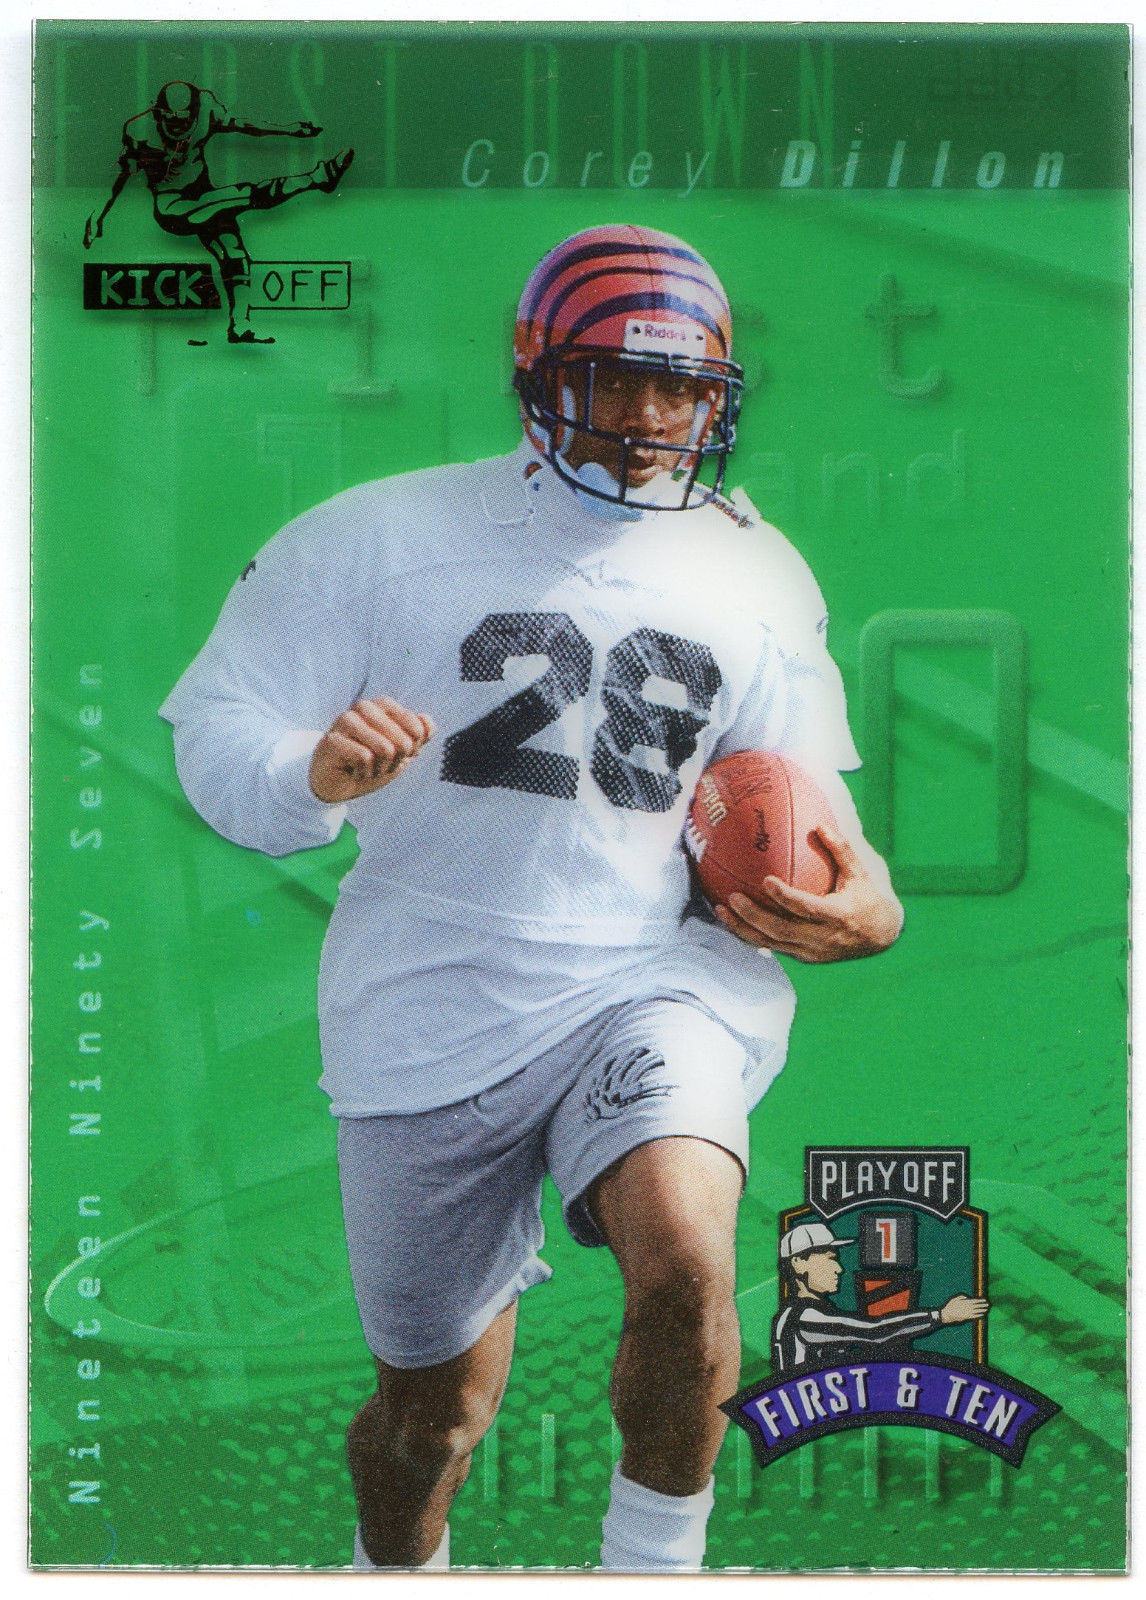 Primary image for 1997 Playoff First & Ten KICK OFF GREEN Parallel Corey Dillion #K166 Bengals